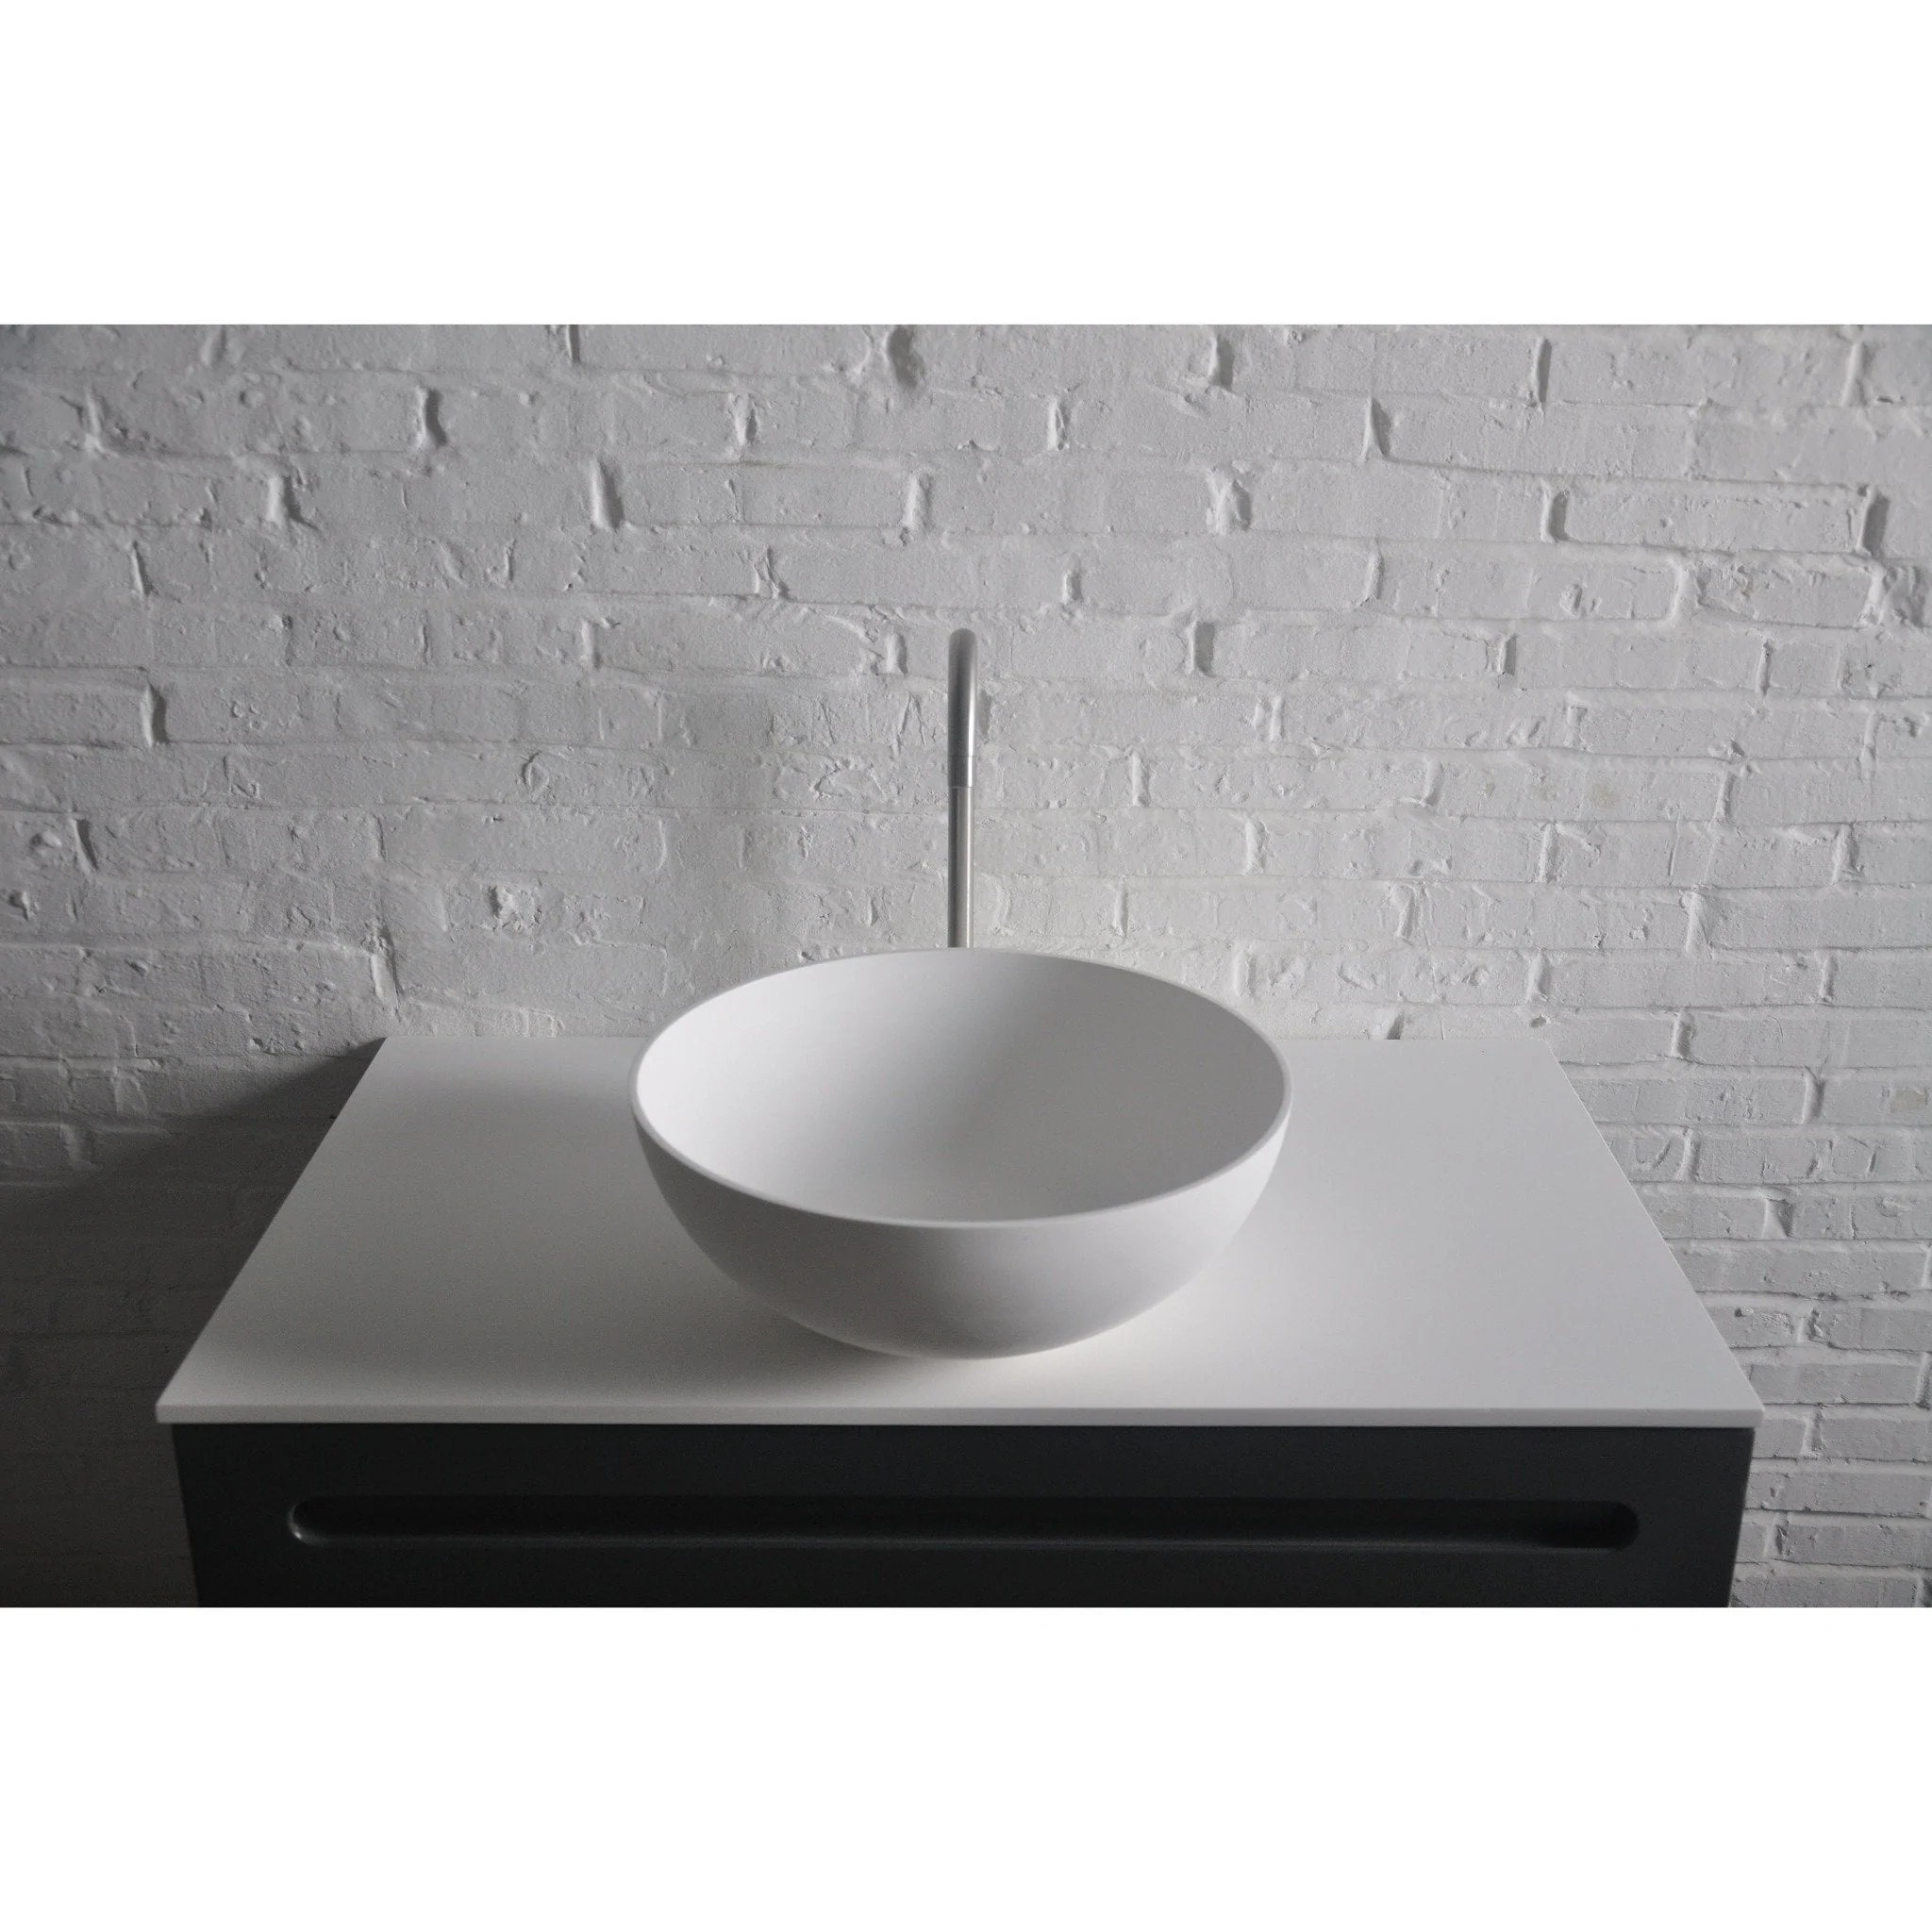 solidthin round 15 in surface vessel sink bowl above counter sink lavatory for vanity cabinet